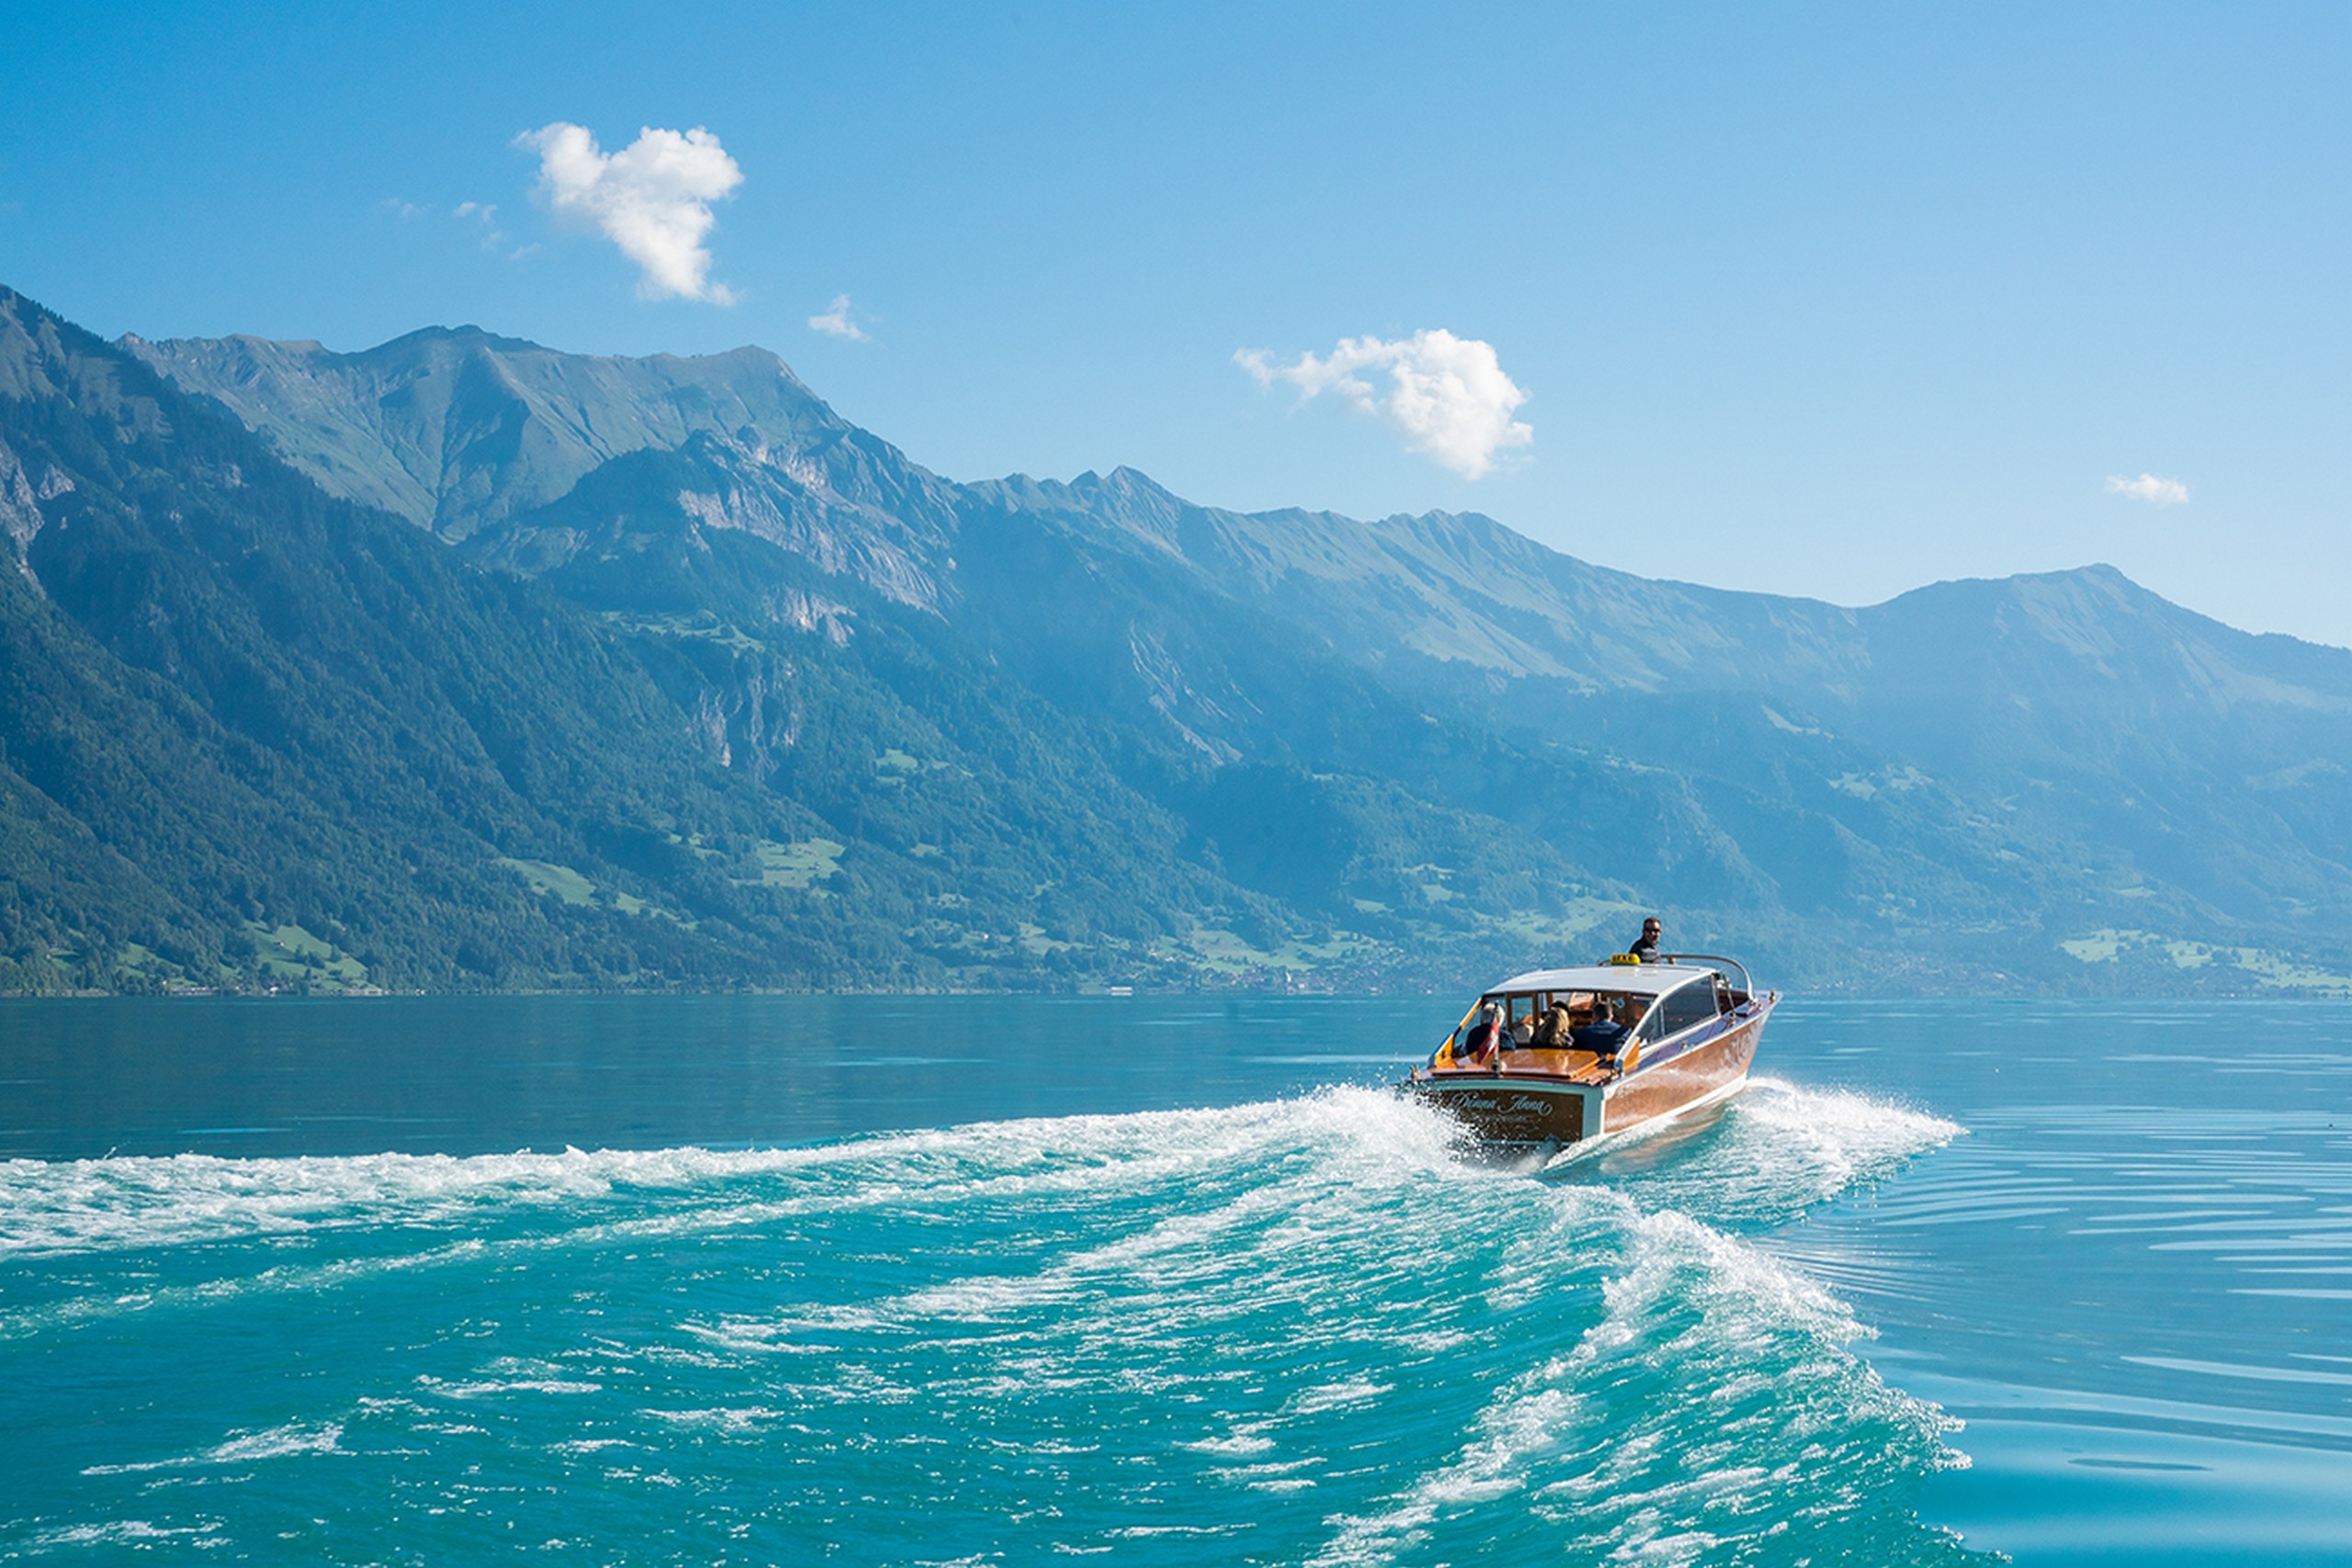 donna-anna-herbst-brienzersee-back-cruise-welle-boot-pedalo